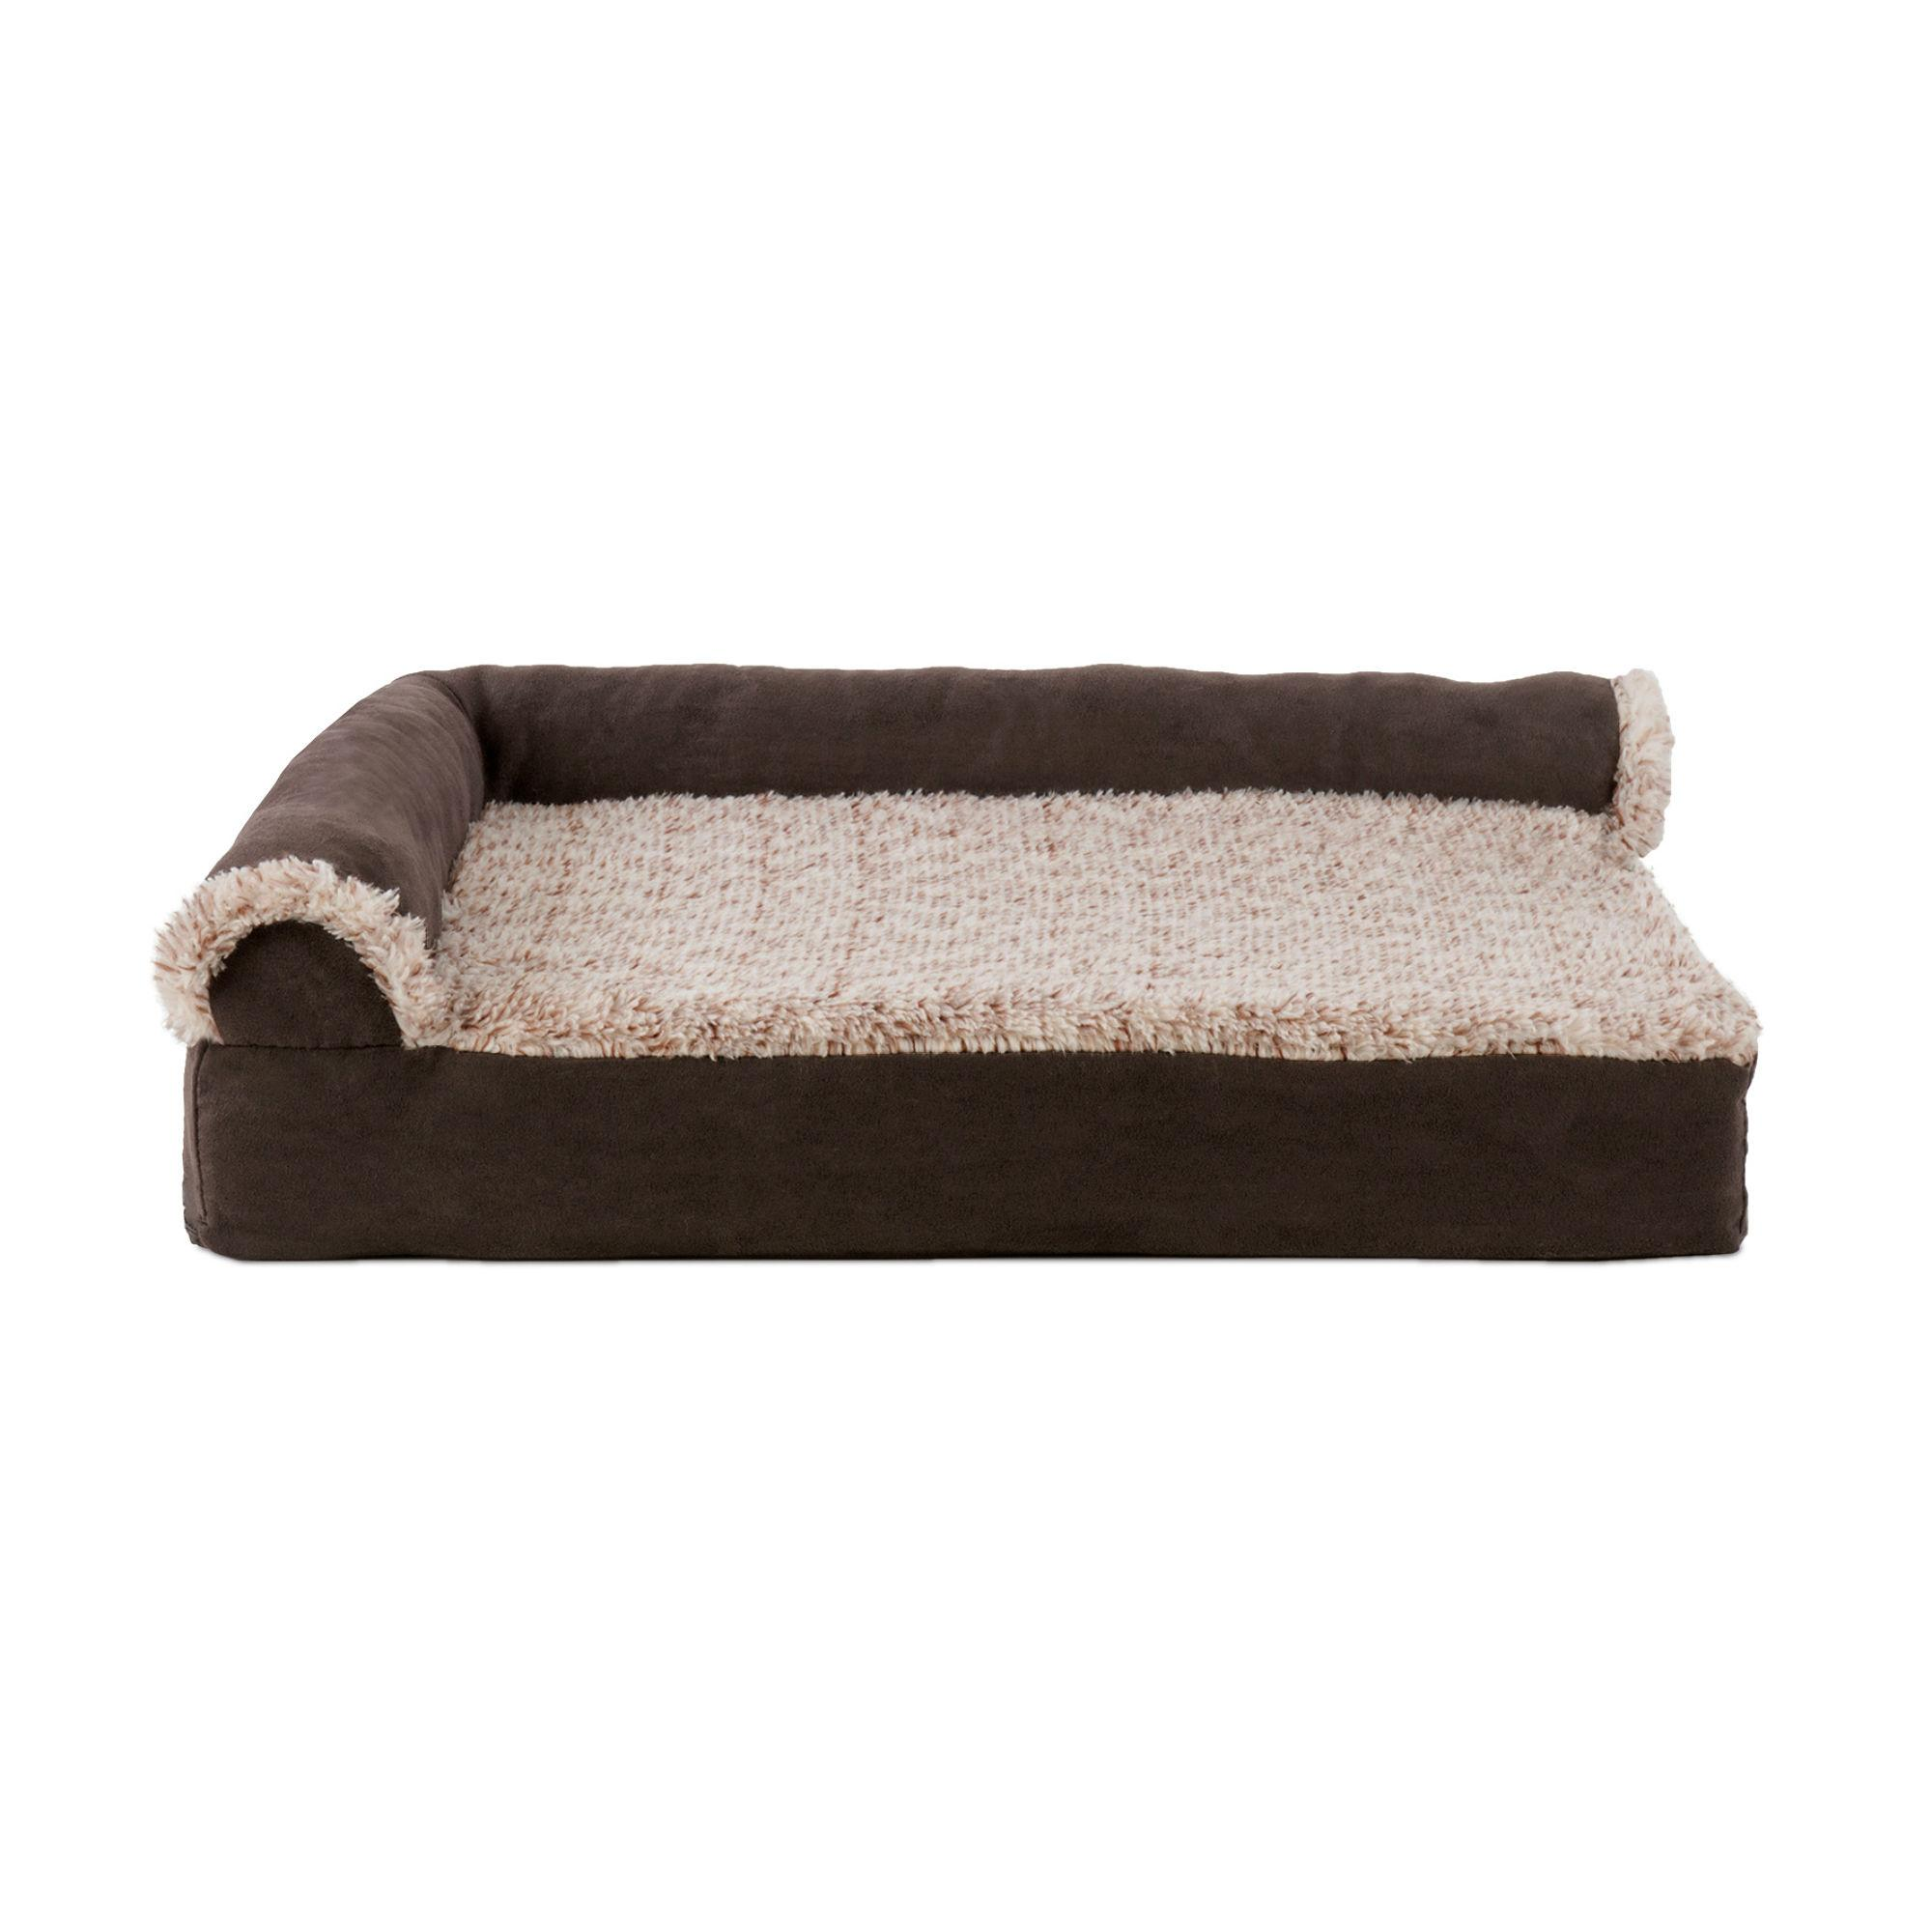 FurHaven Two-Tone Faux Fur & Suede Deluxe Chaise Lounge Sofa-Style Pet Bed - Espresso